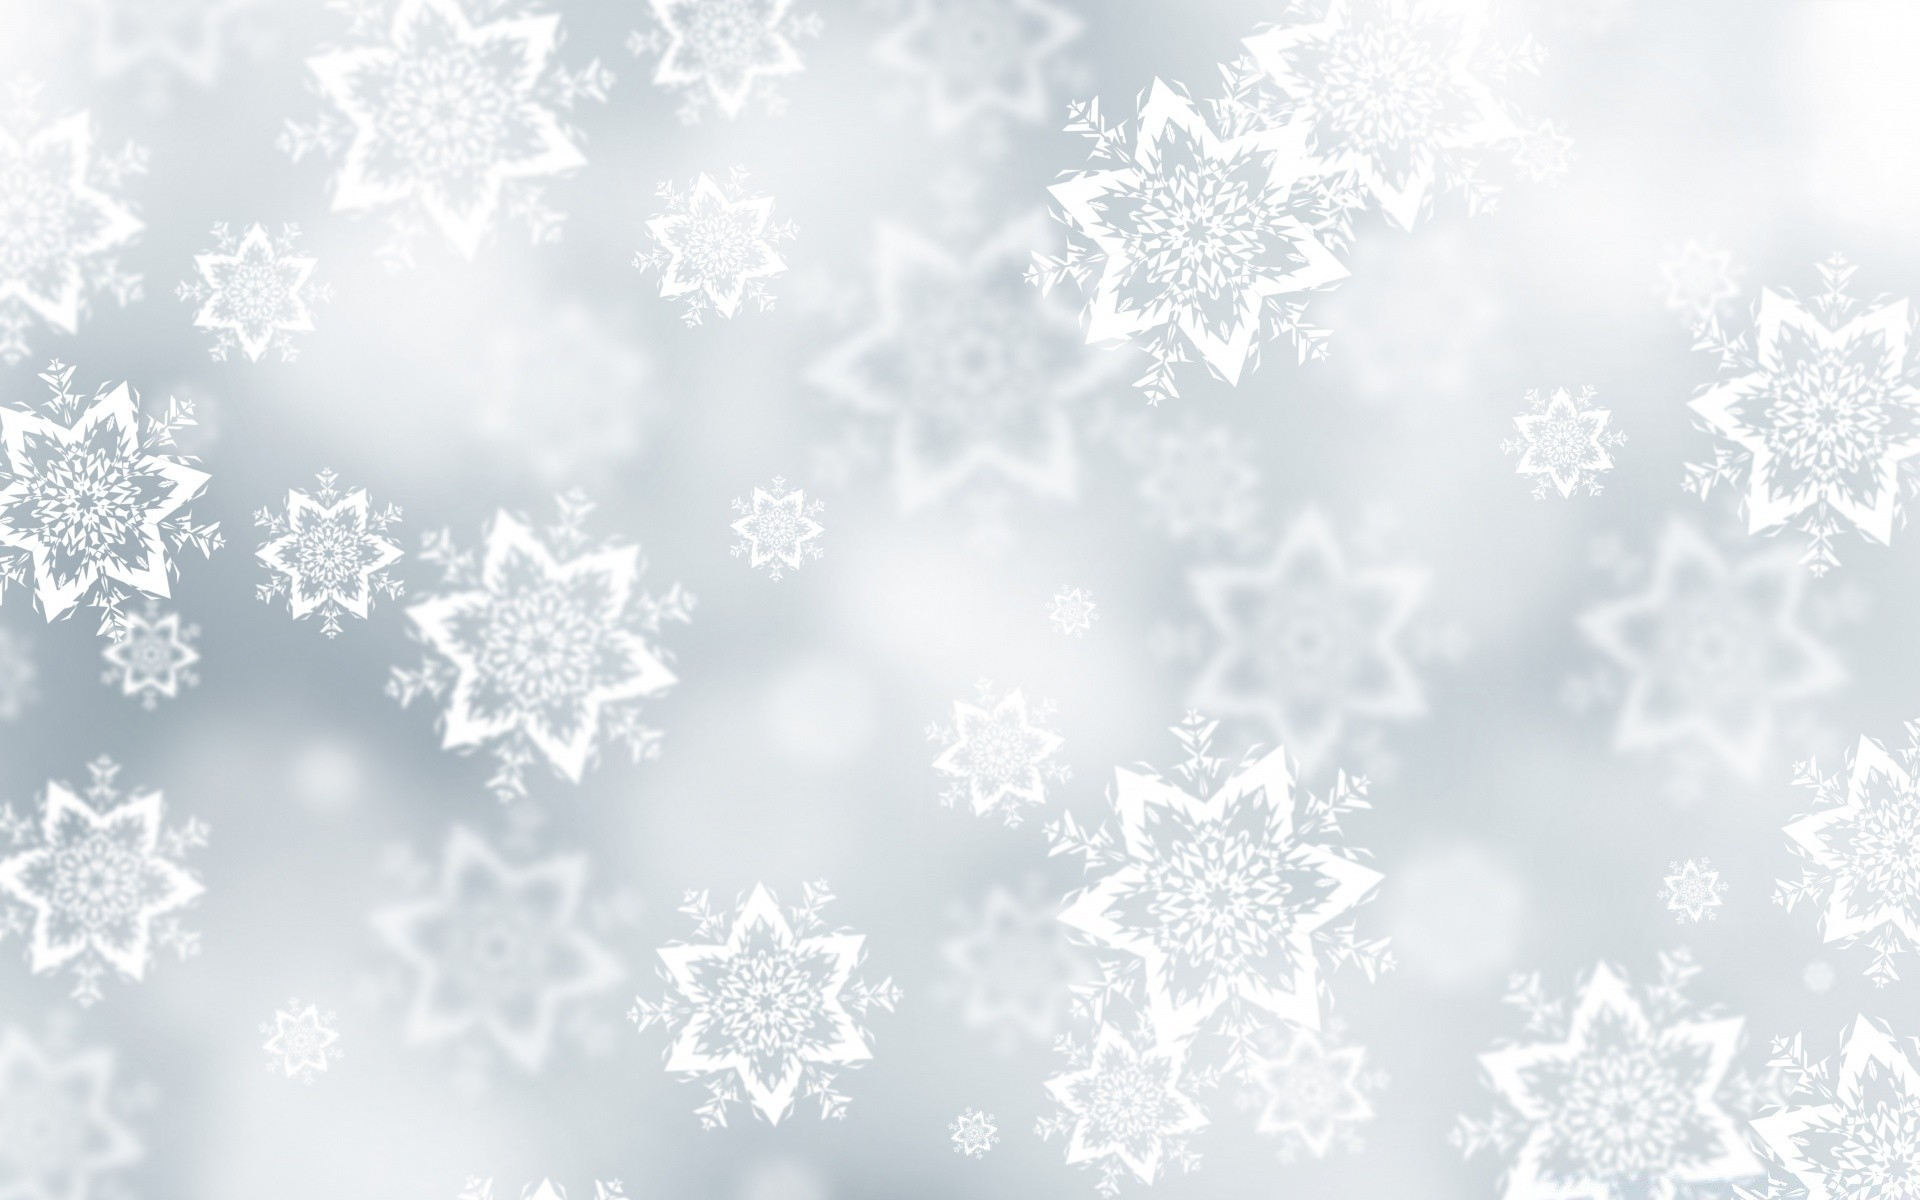 snowflakes texture android wallpapers for free